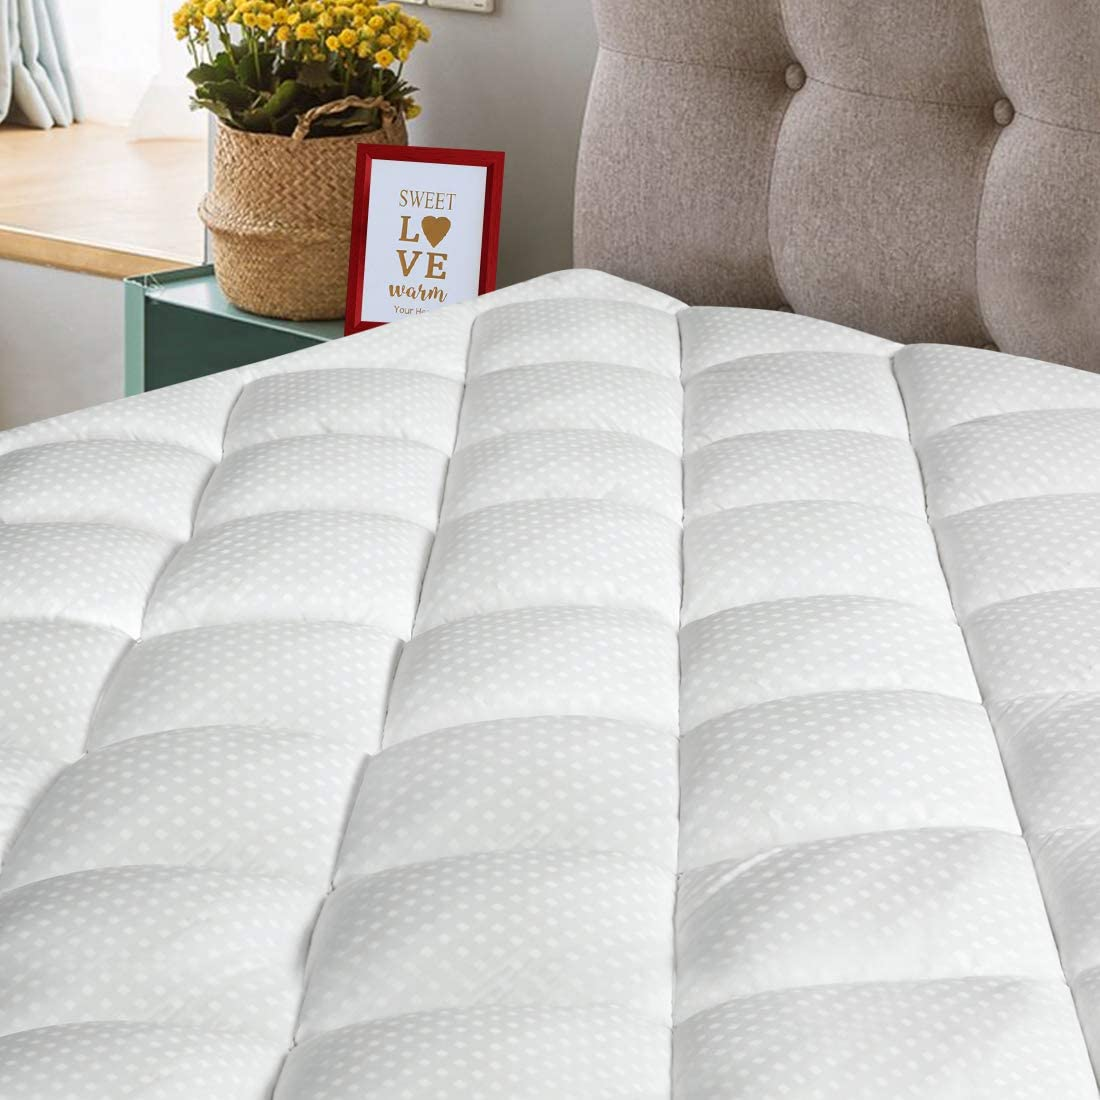 King Size Mattress Pad 300TC Cotton Top Pillow Top Mattress Topper 8-21 inch Deep Pocket Fitted Mattress Protector Cover Fill 3D Snow Down Alternative (King, White Classic)